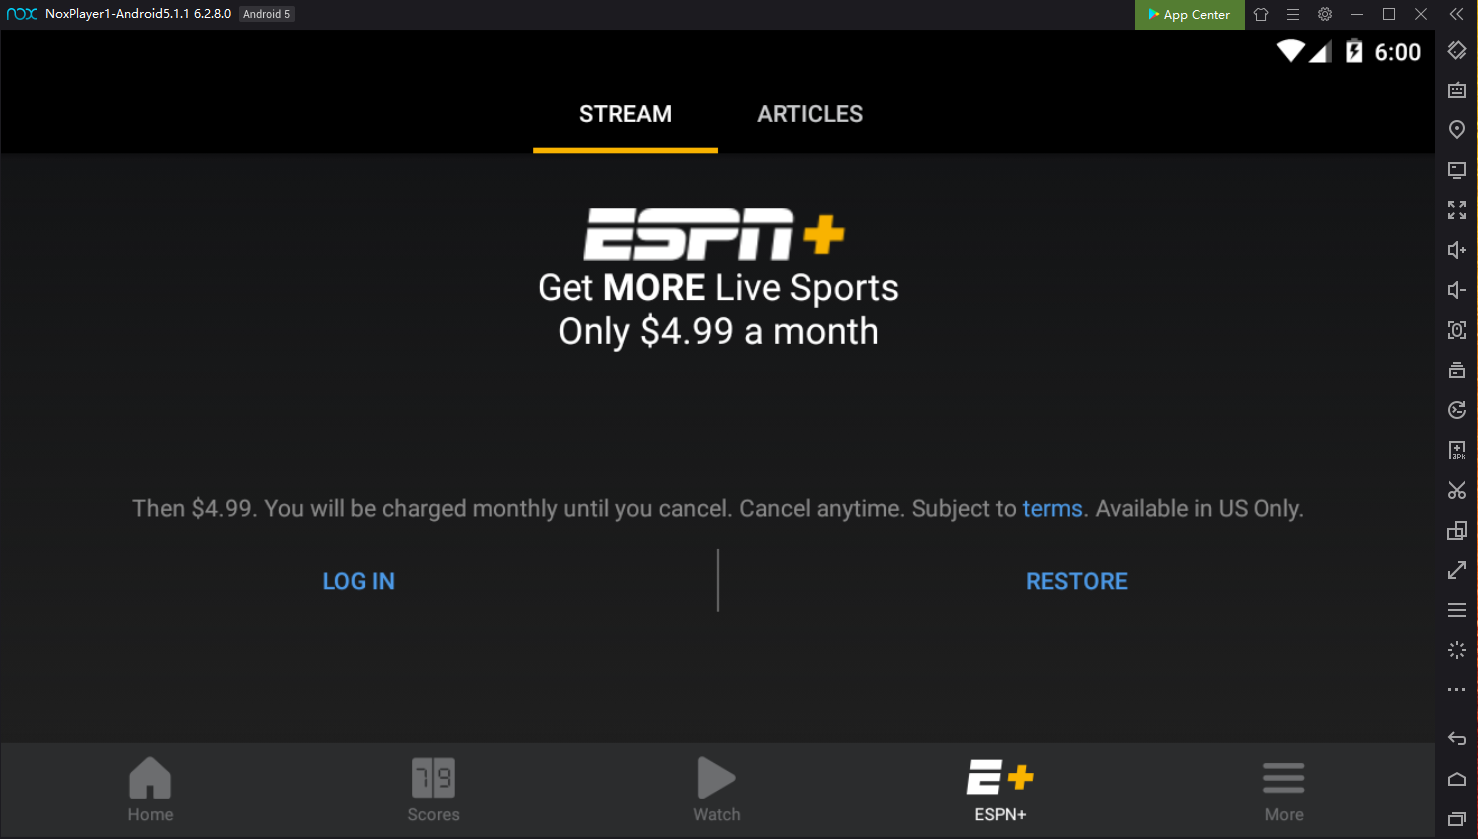 Download ESPN App on PC with NoxPlayer | NoxPlayer